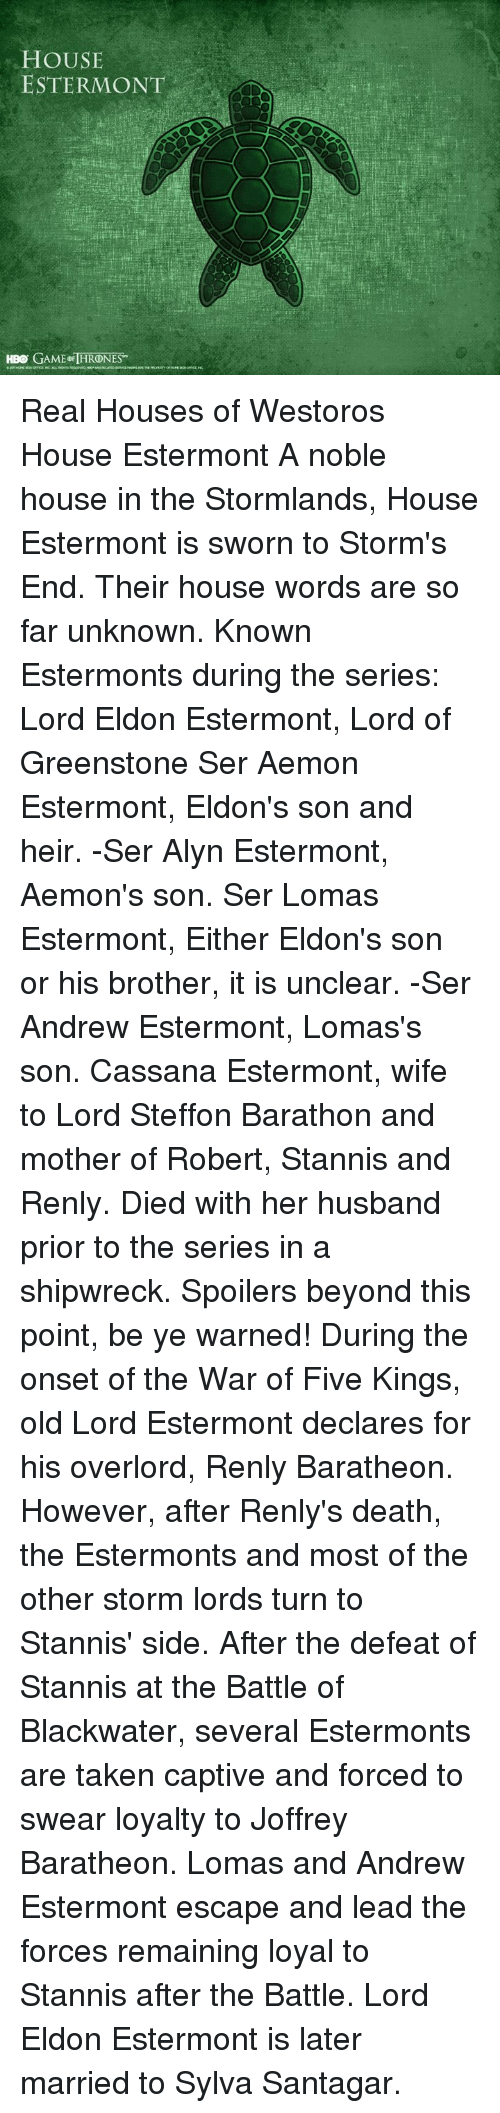 Hbo, Memes, and Taken: HOUSE  ESTER MONT  HBO GAME THRONES Real Houses of Westoros  House Estermont   A noble house in the Stormlands, House Estermont is sworn to Storm's End.   Their house words are so far unknown.   Known Estermonts during the series:   Lord Eldon Estermont, Lord of Greenstone  Ser Aemon Estermont, Eldon's son and heir. -Ser Alyn Estermont, Aemon's son.  Ser Lomas Estermont, Either Eldon's son or his brother, it is unclear. -Ser Andrew Estermont, Lomas's son.  Cassana Estermont, wife to Lord Steffon Barathon and mother of Robert, Stannis and Renly. Died with her husband prior to the series in a shipwreck.  Spoilers beyond this point, be ye warned!   During the onset of the War of Five Kings, old Lord Estermont declares for his overlord, Renly Baratheon.   However, after Renly's death, the Estermonts and most of the other storm lords turn to Stannis' side.   After the defeat of Stannis at the Battle of Blackwater, several Estermonts are taken captive and forced to swear loyalty to Joffrey Baratheon.   Lomas and Andrew Estermont escape and lead the forces remaining loyal to  Stannis after the Battle.   Lord Eldon Estermont is later married to Sylva Santagar.